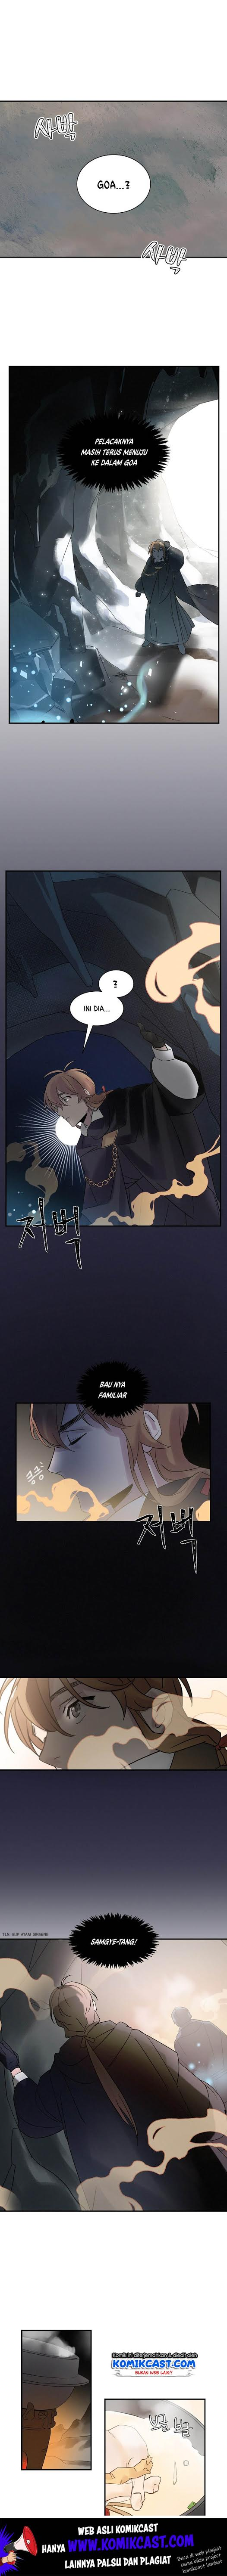 Spoiler Manhwa Leveling Up, by Only Eating! 1